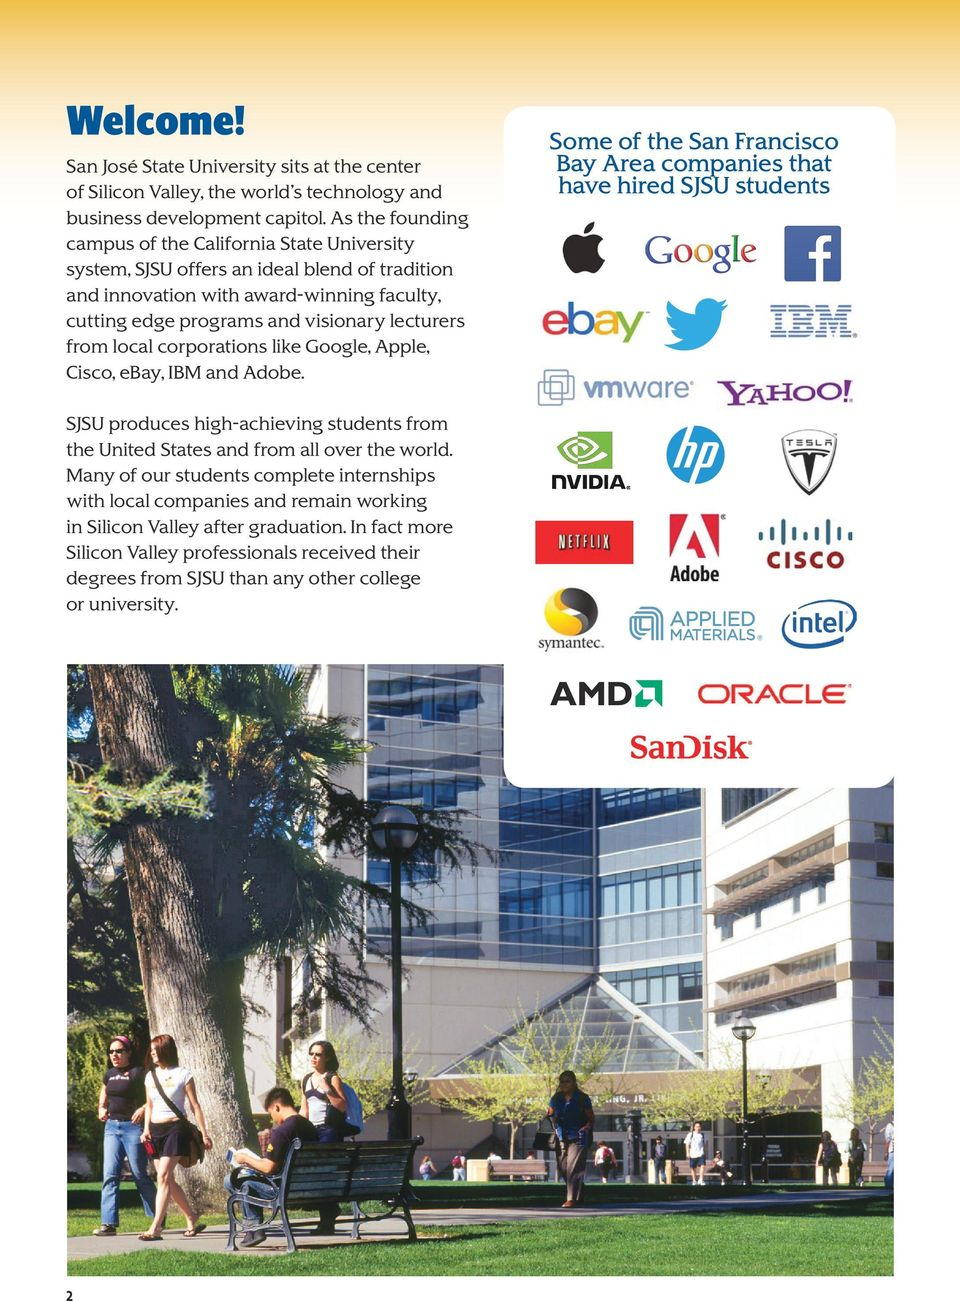 from local corporations like Google, Apple, Cisco, ebay, IBM and Adobe. SJSU produces high-achieving students from the United States and from all over the world.